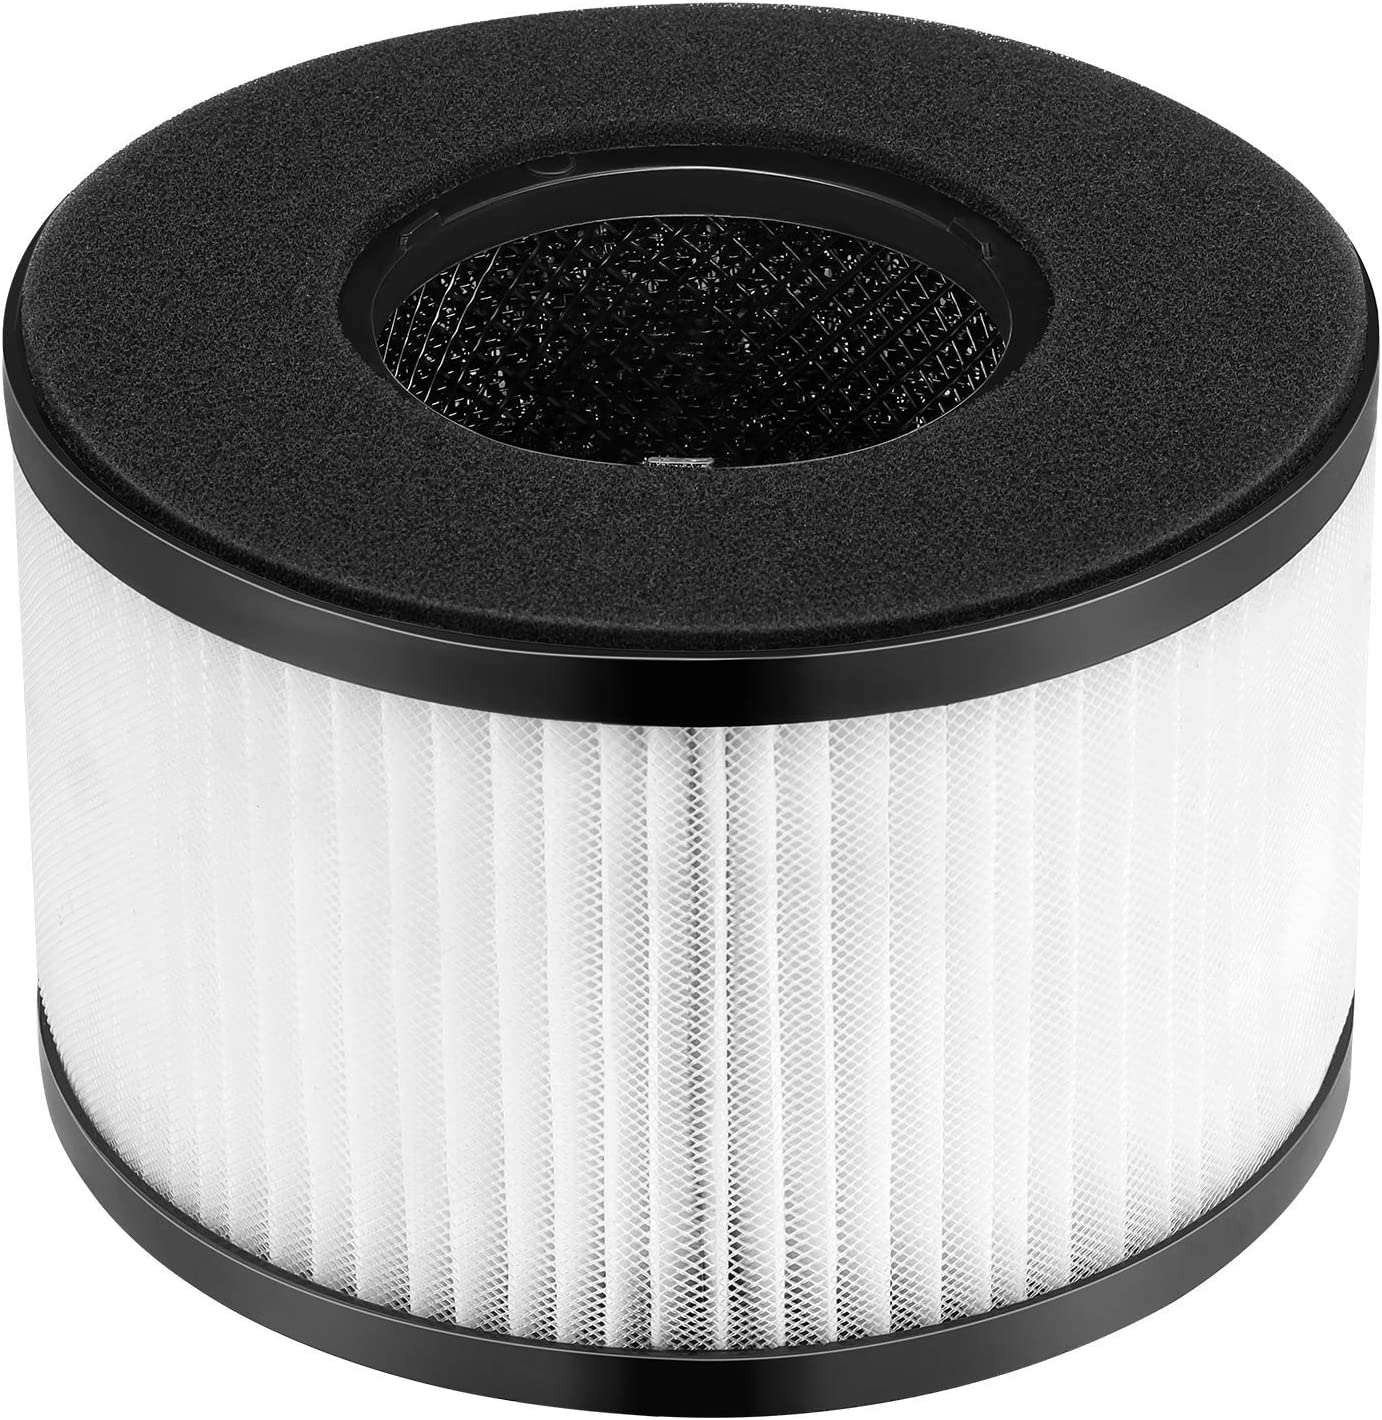 isinlive BS-03 HEPA Replacement Filter for BS-03 PARTU HEPA Air Purifier with 3-in-1 Filtration System, 1 Pack: Home & Kitchen